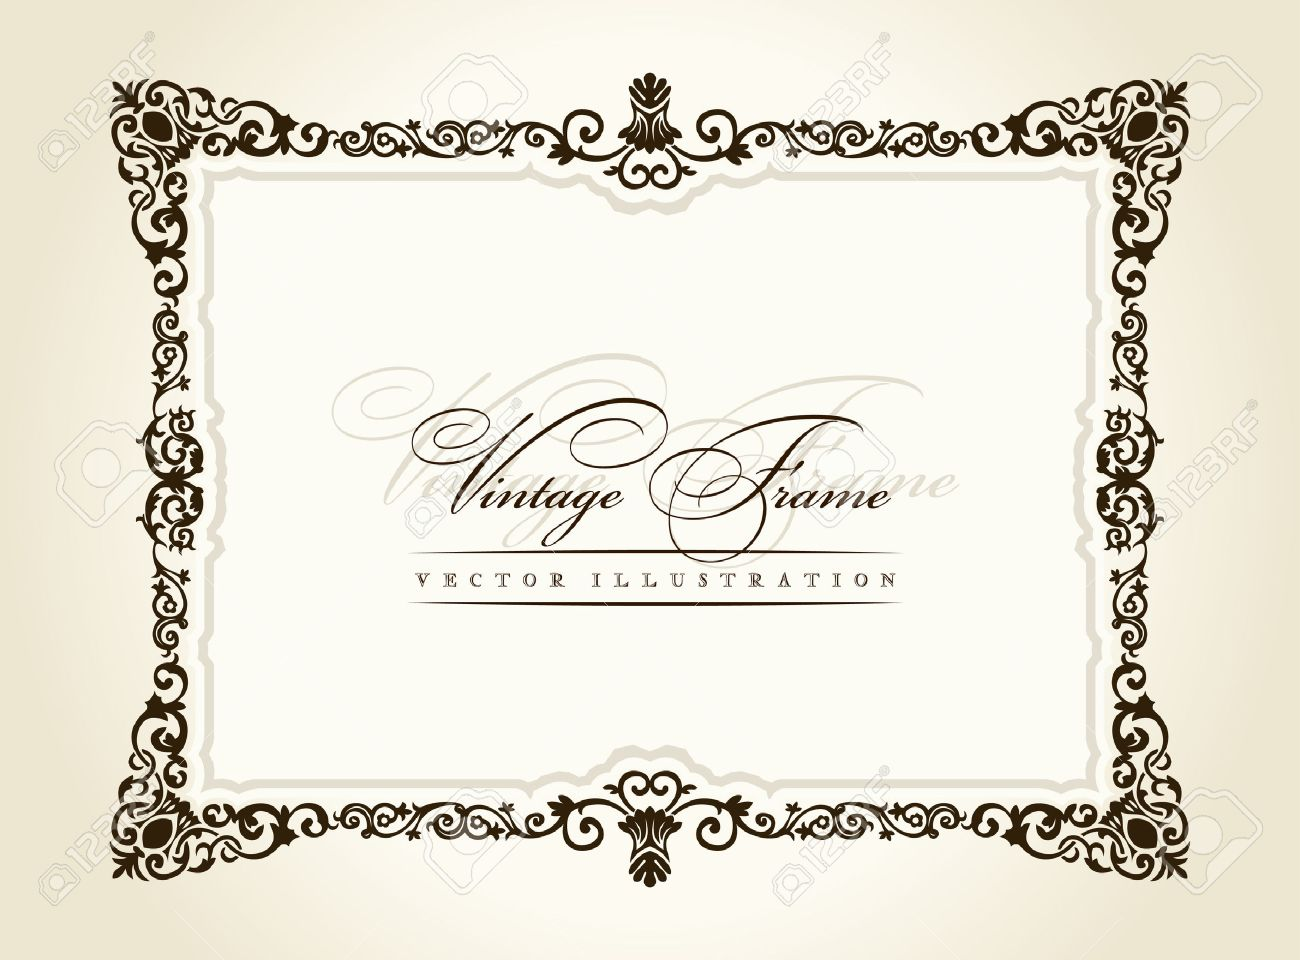 Vector Vintage Frame Retro Decor Ornament Old Royalty Free Cliparts ...